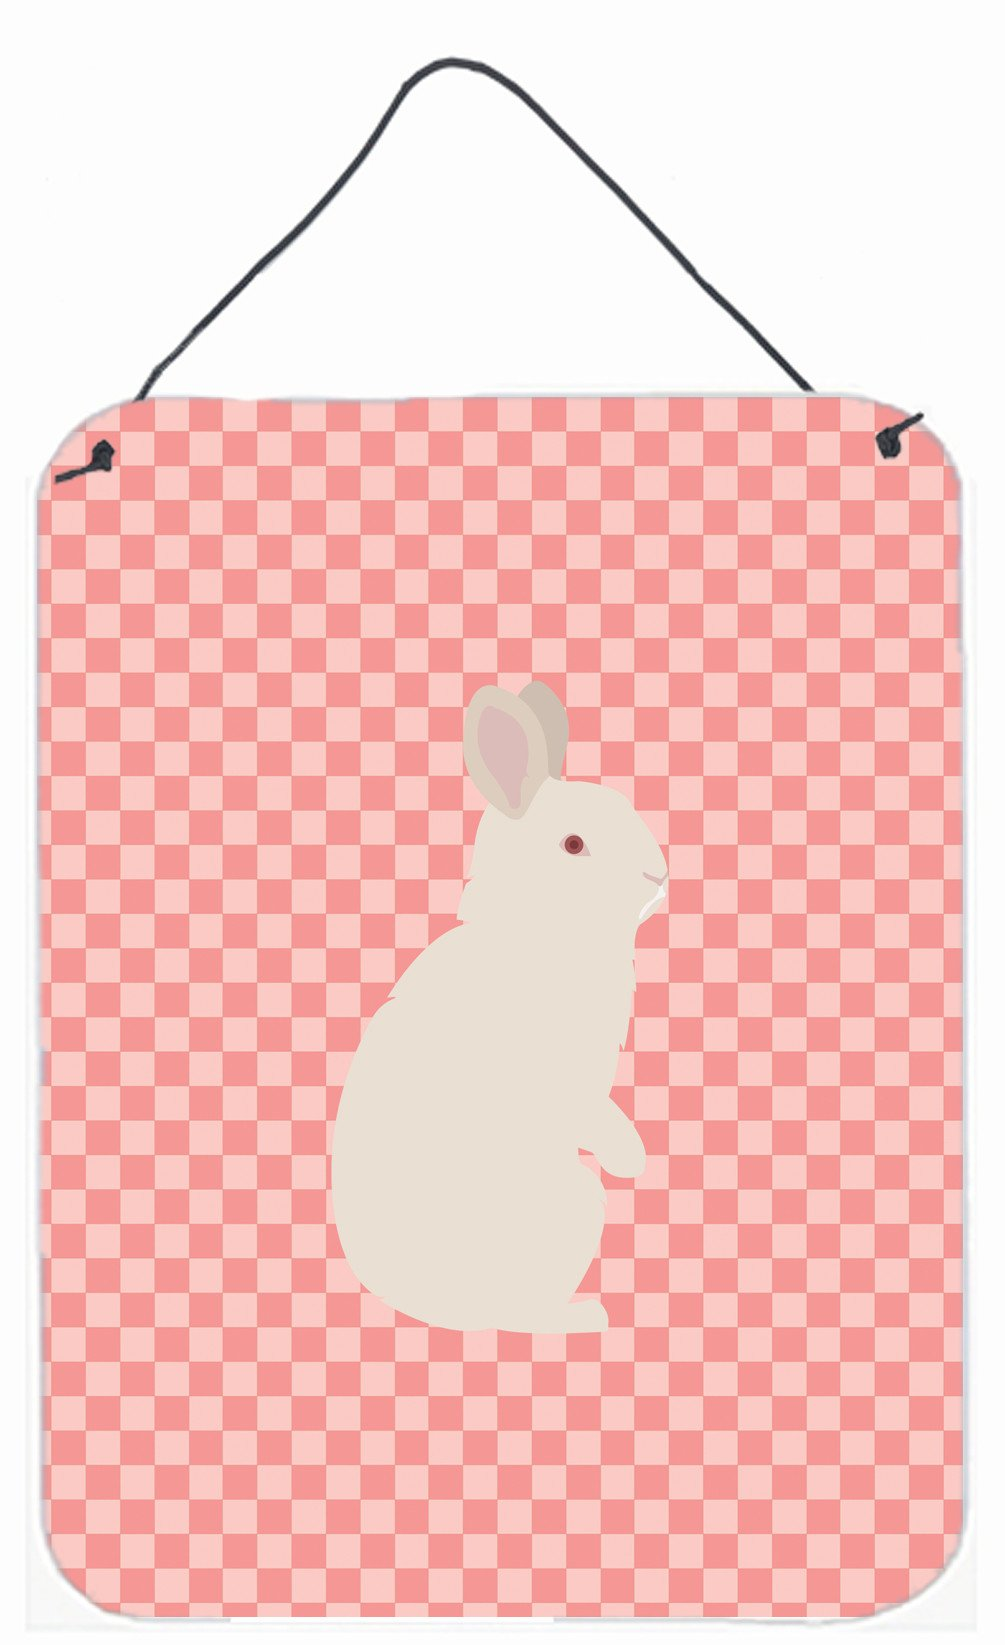 New Zealand White Rabbit Pink Check Wall or Door Hanging Prints BB7965DS1216 by Caroline's Treasures